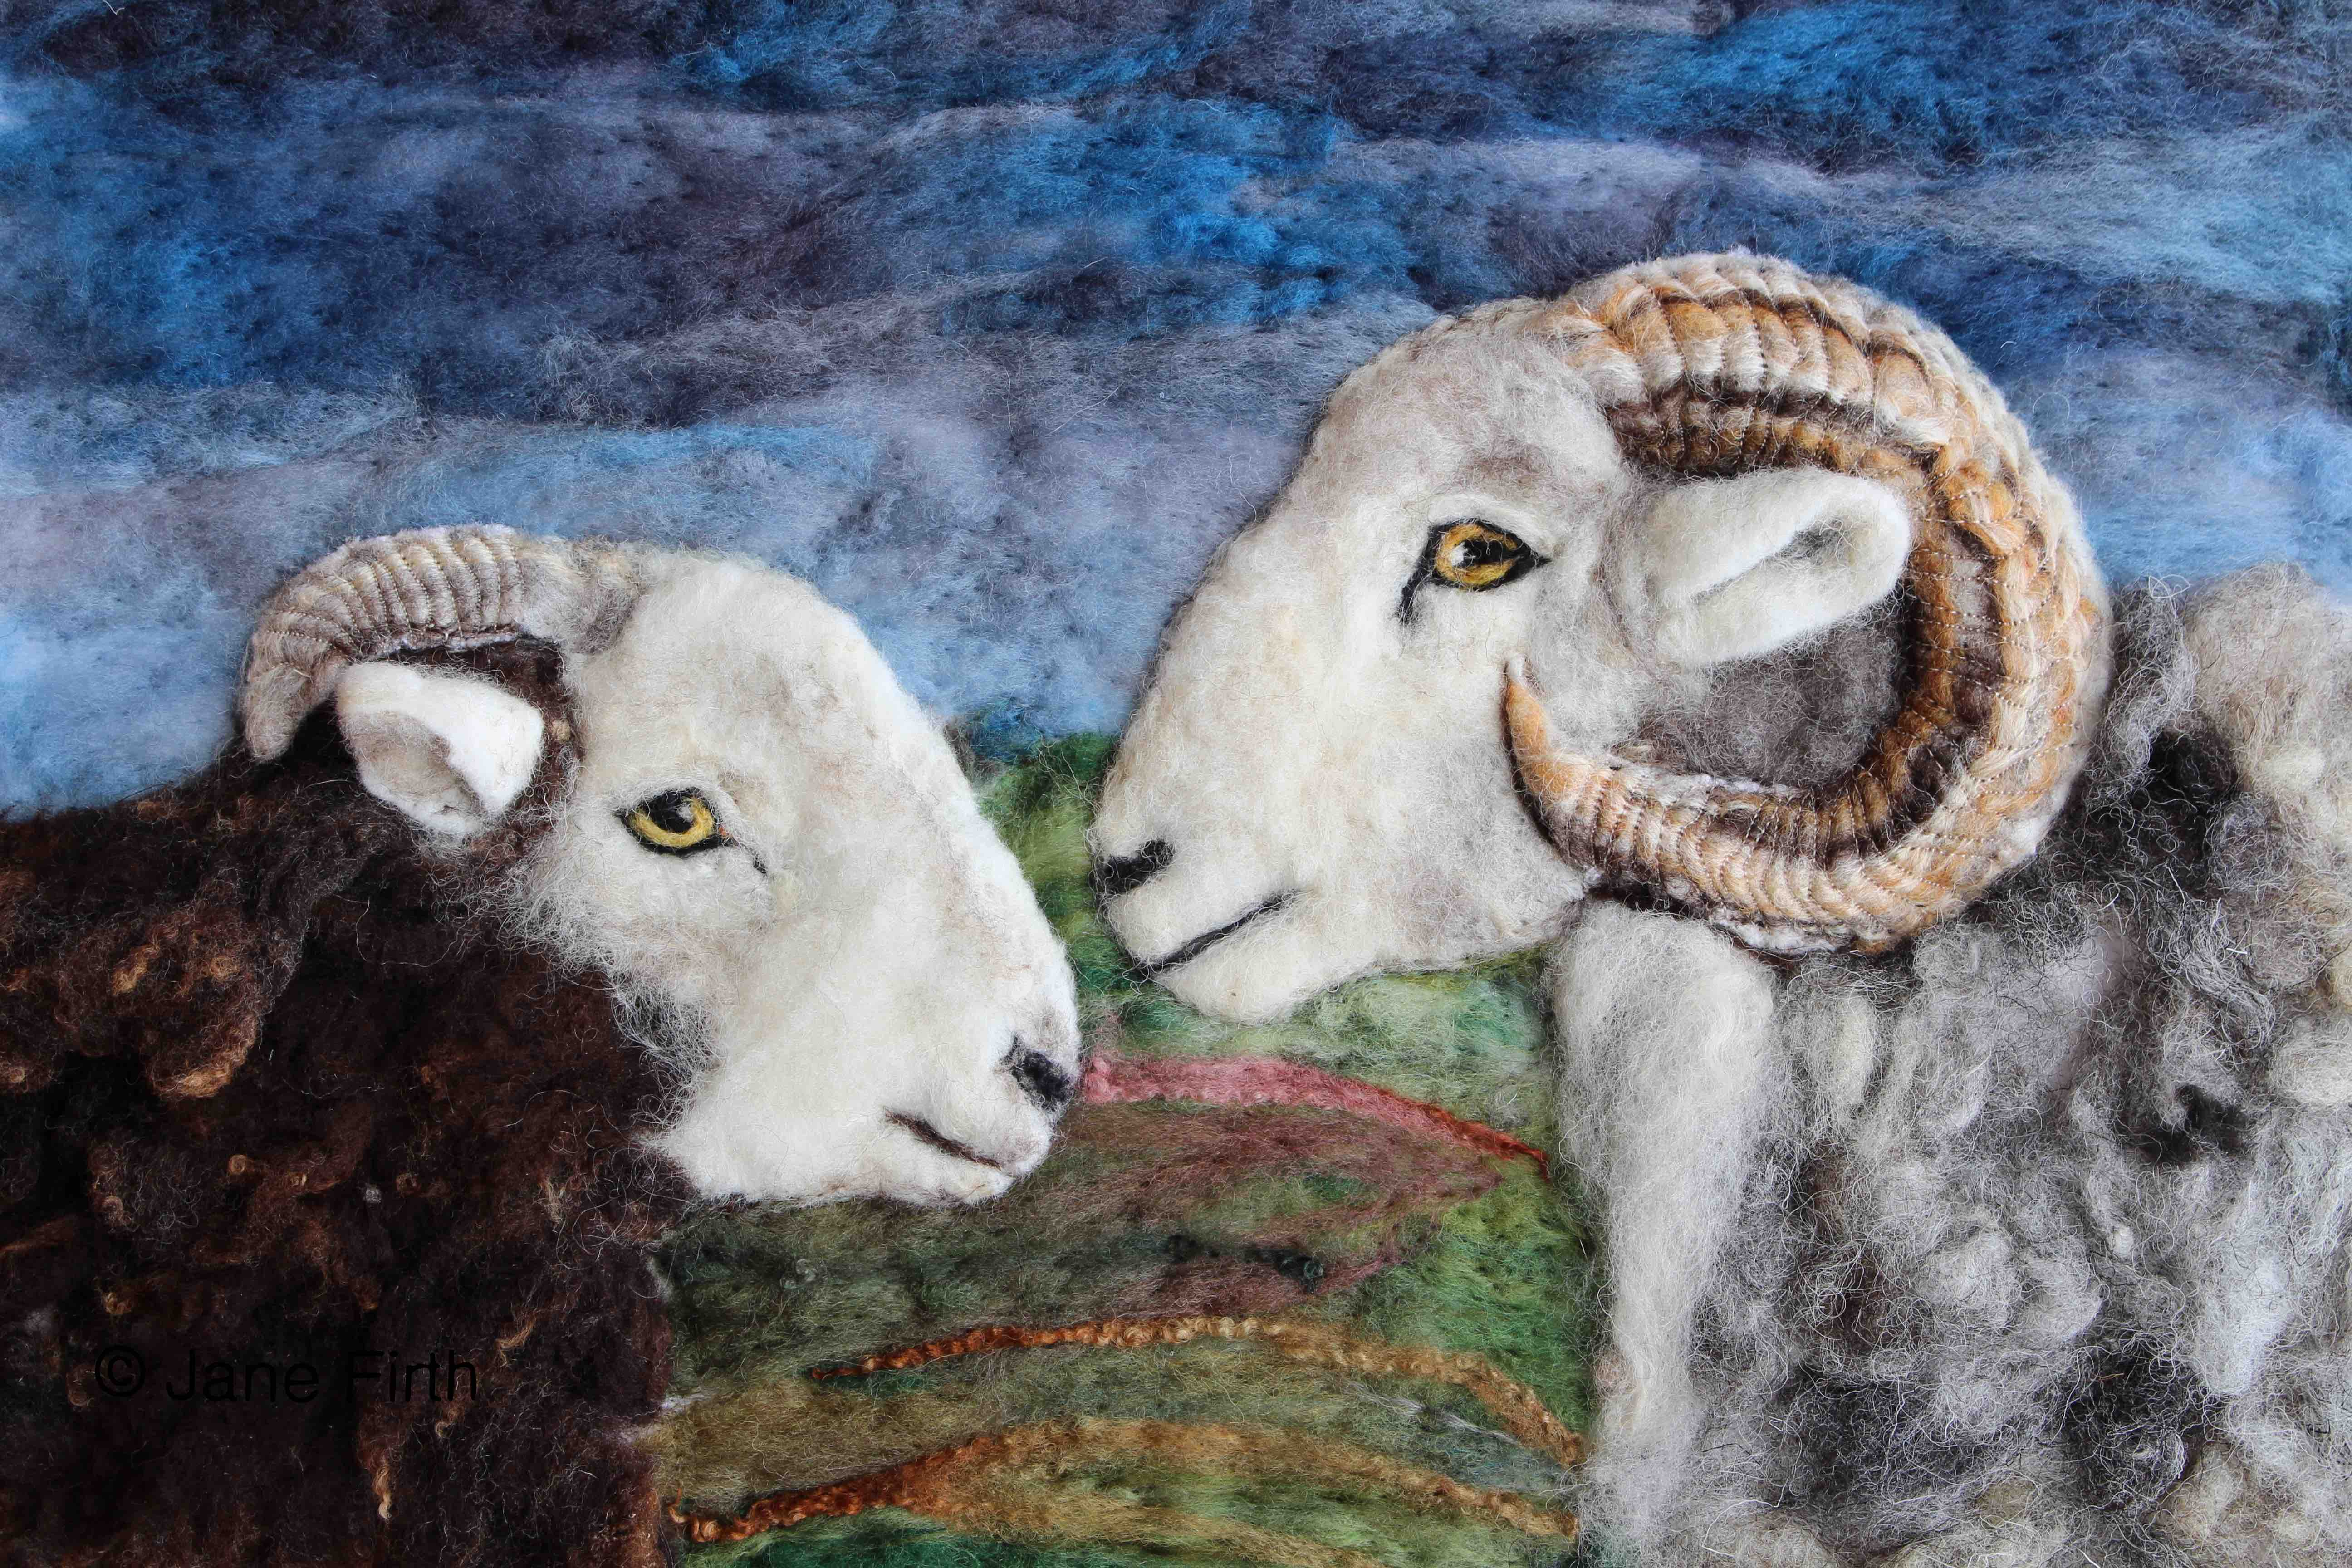 Two herdwick rams